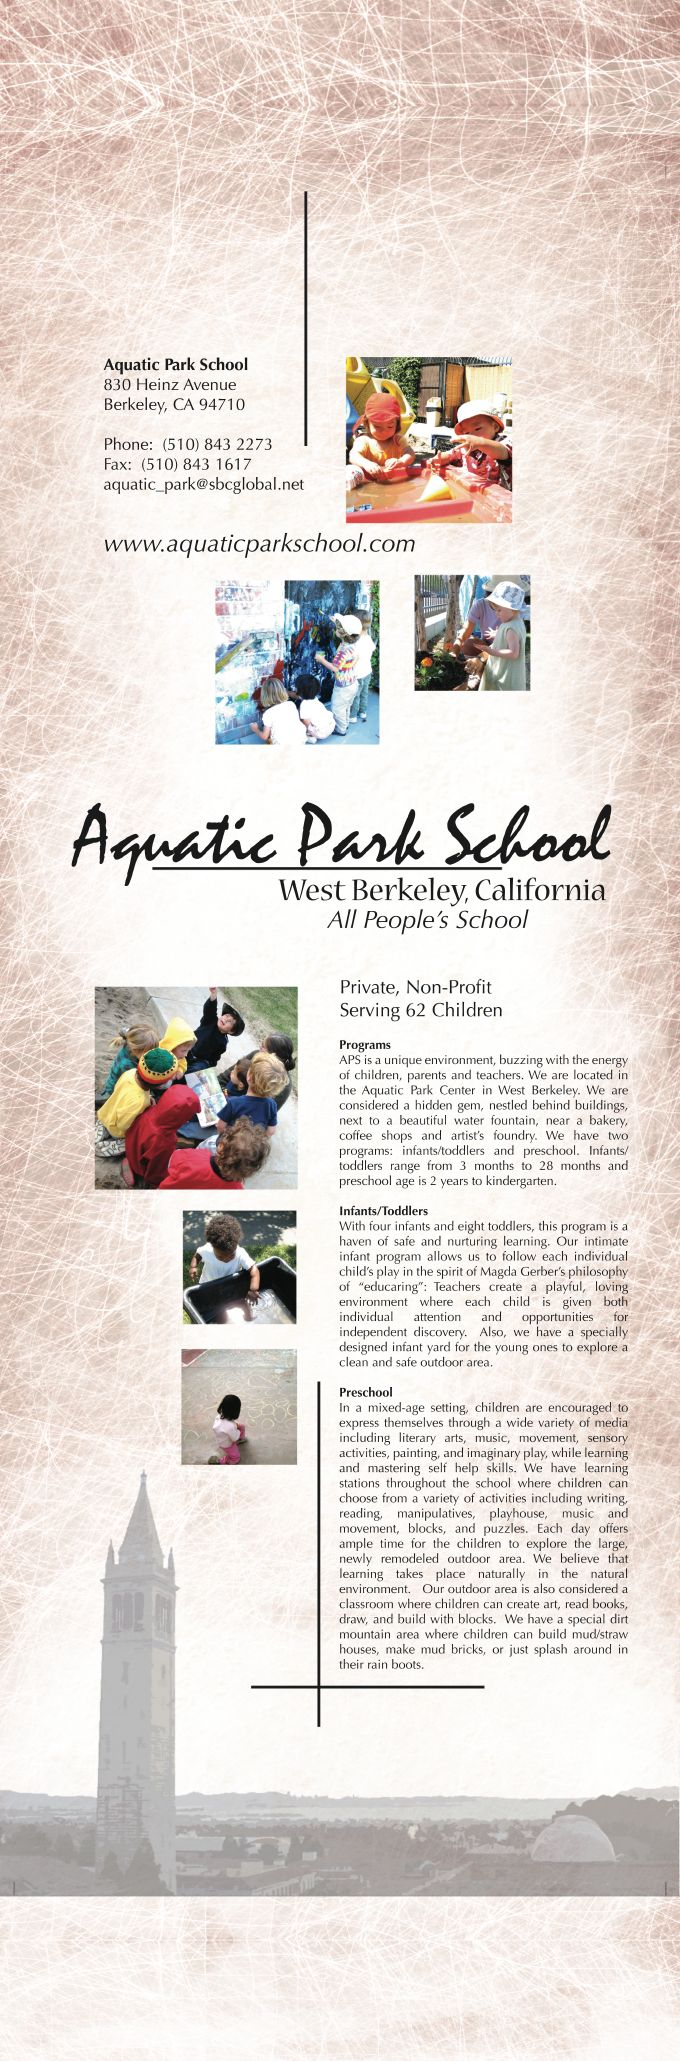 Aquatic Park School